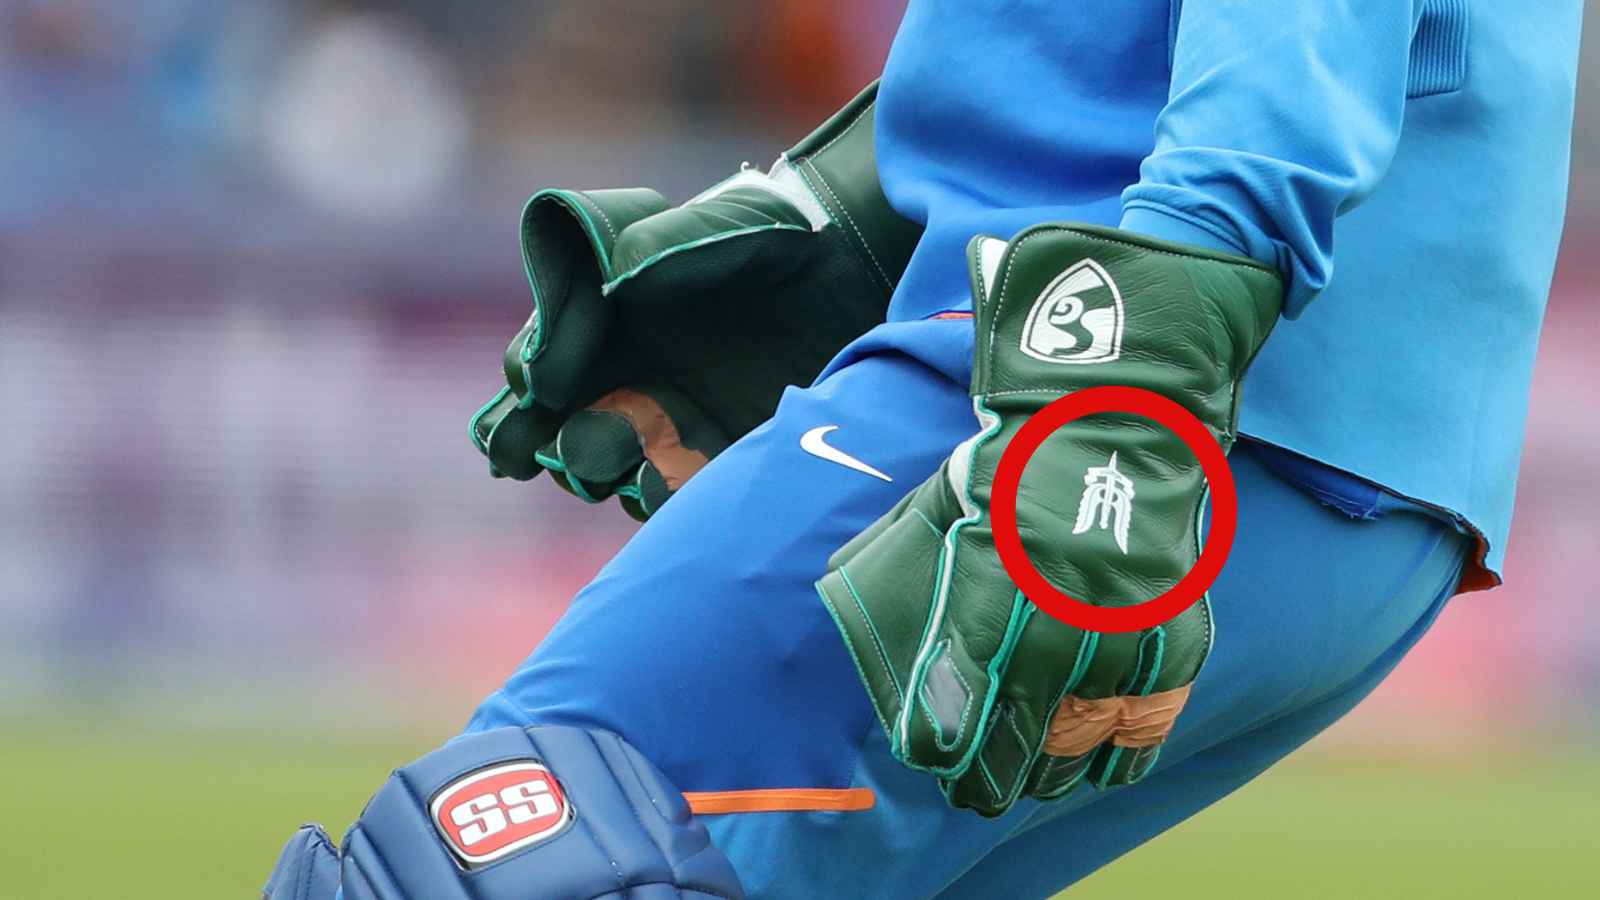 Dhoni's glove with the Para Special Forces insignia on it.